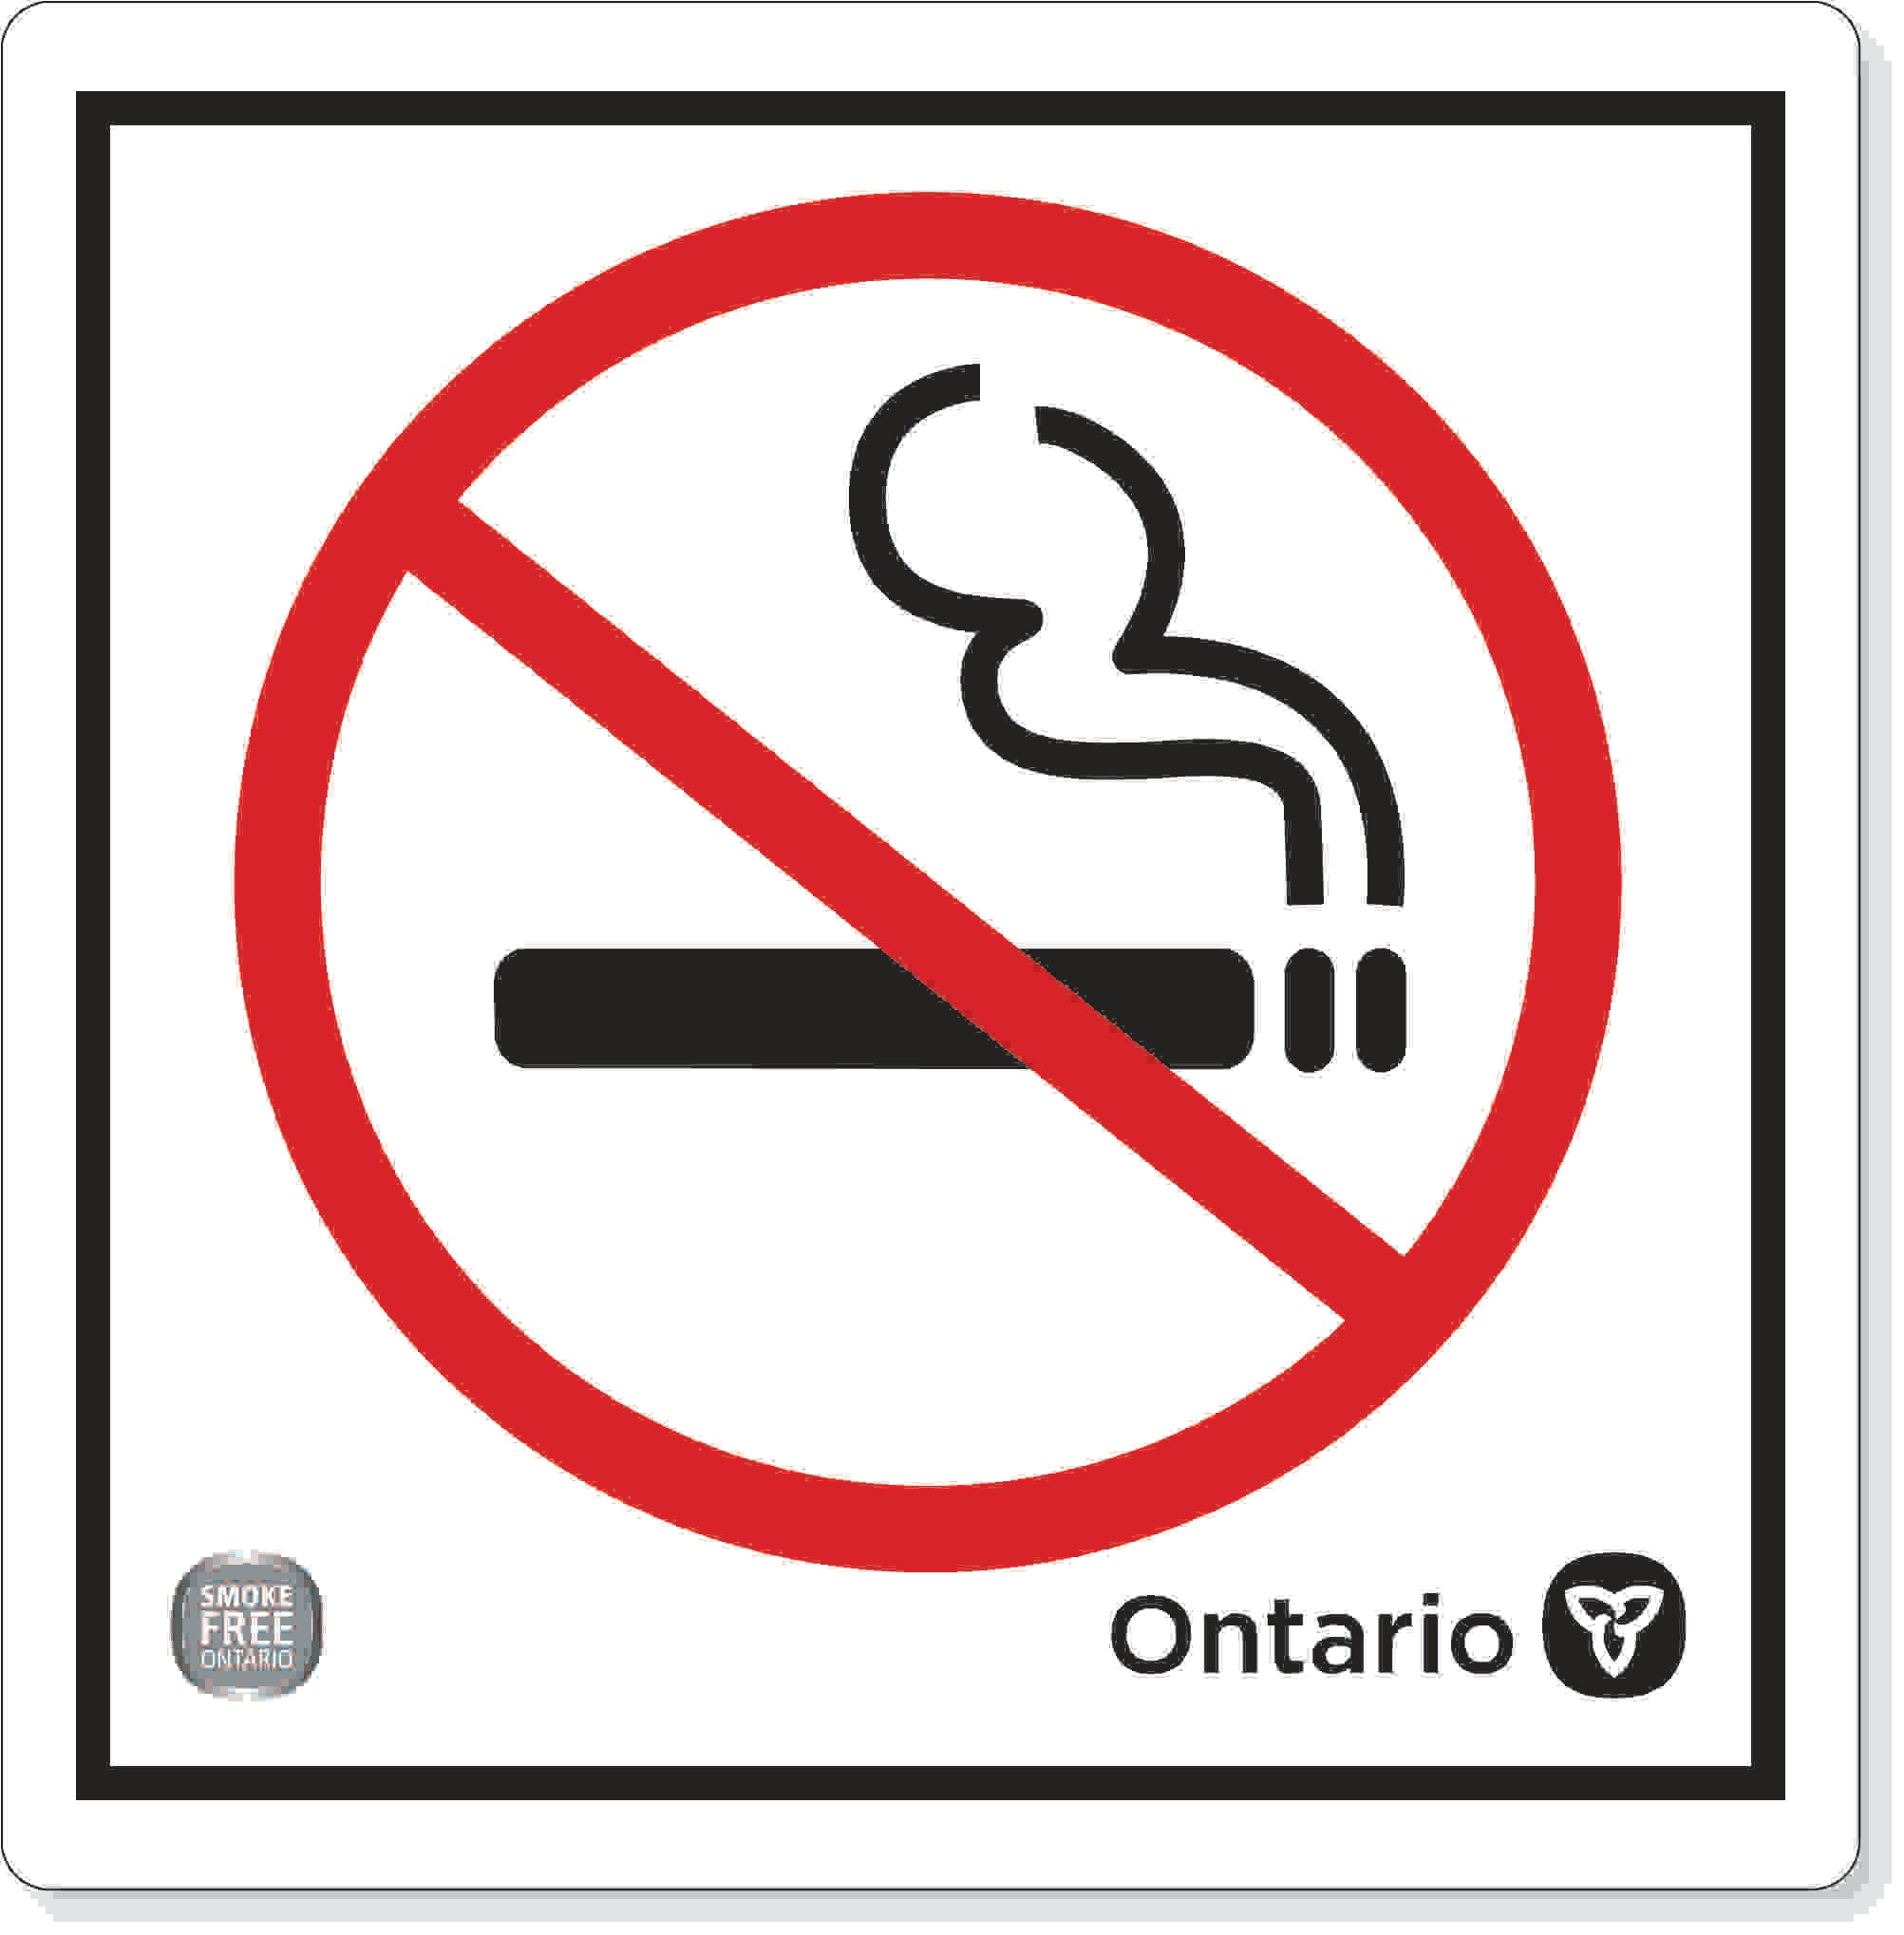 No smoking decal- Smoke free Ontario